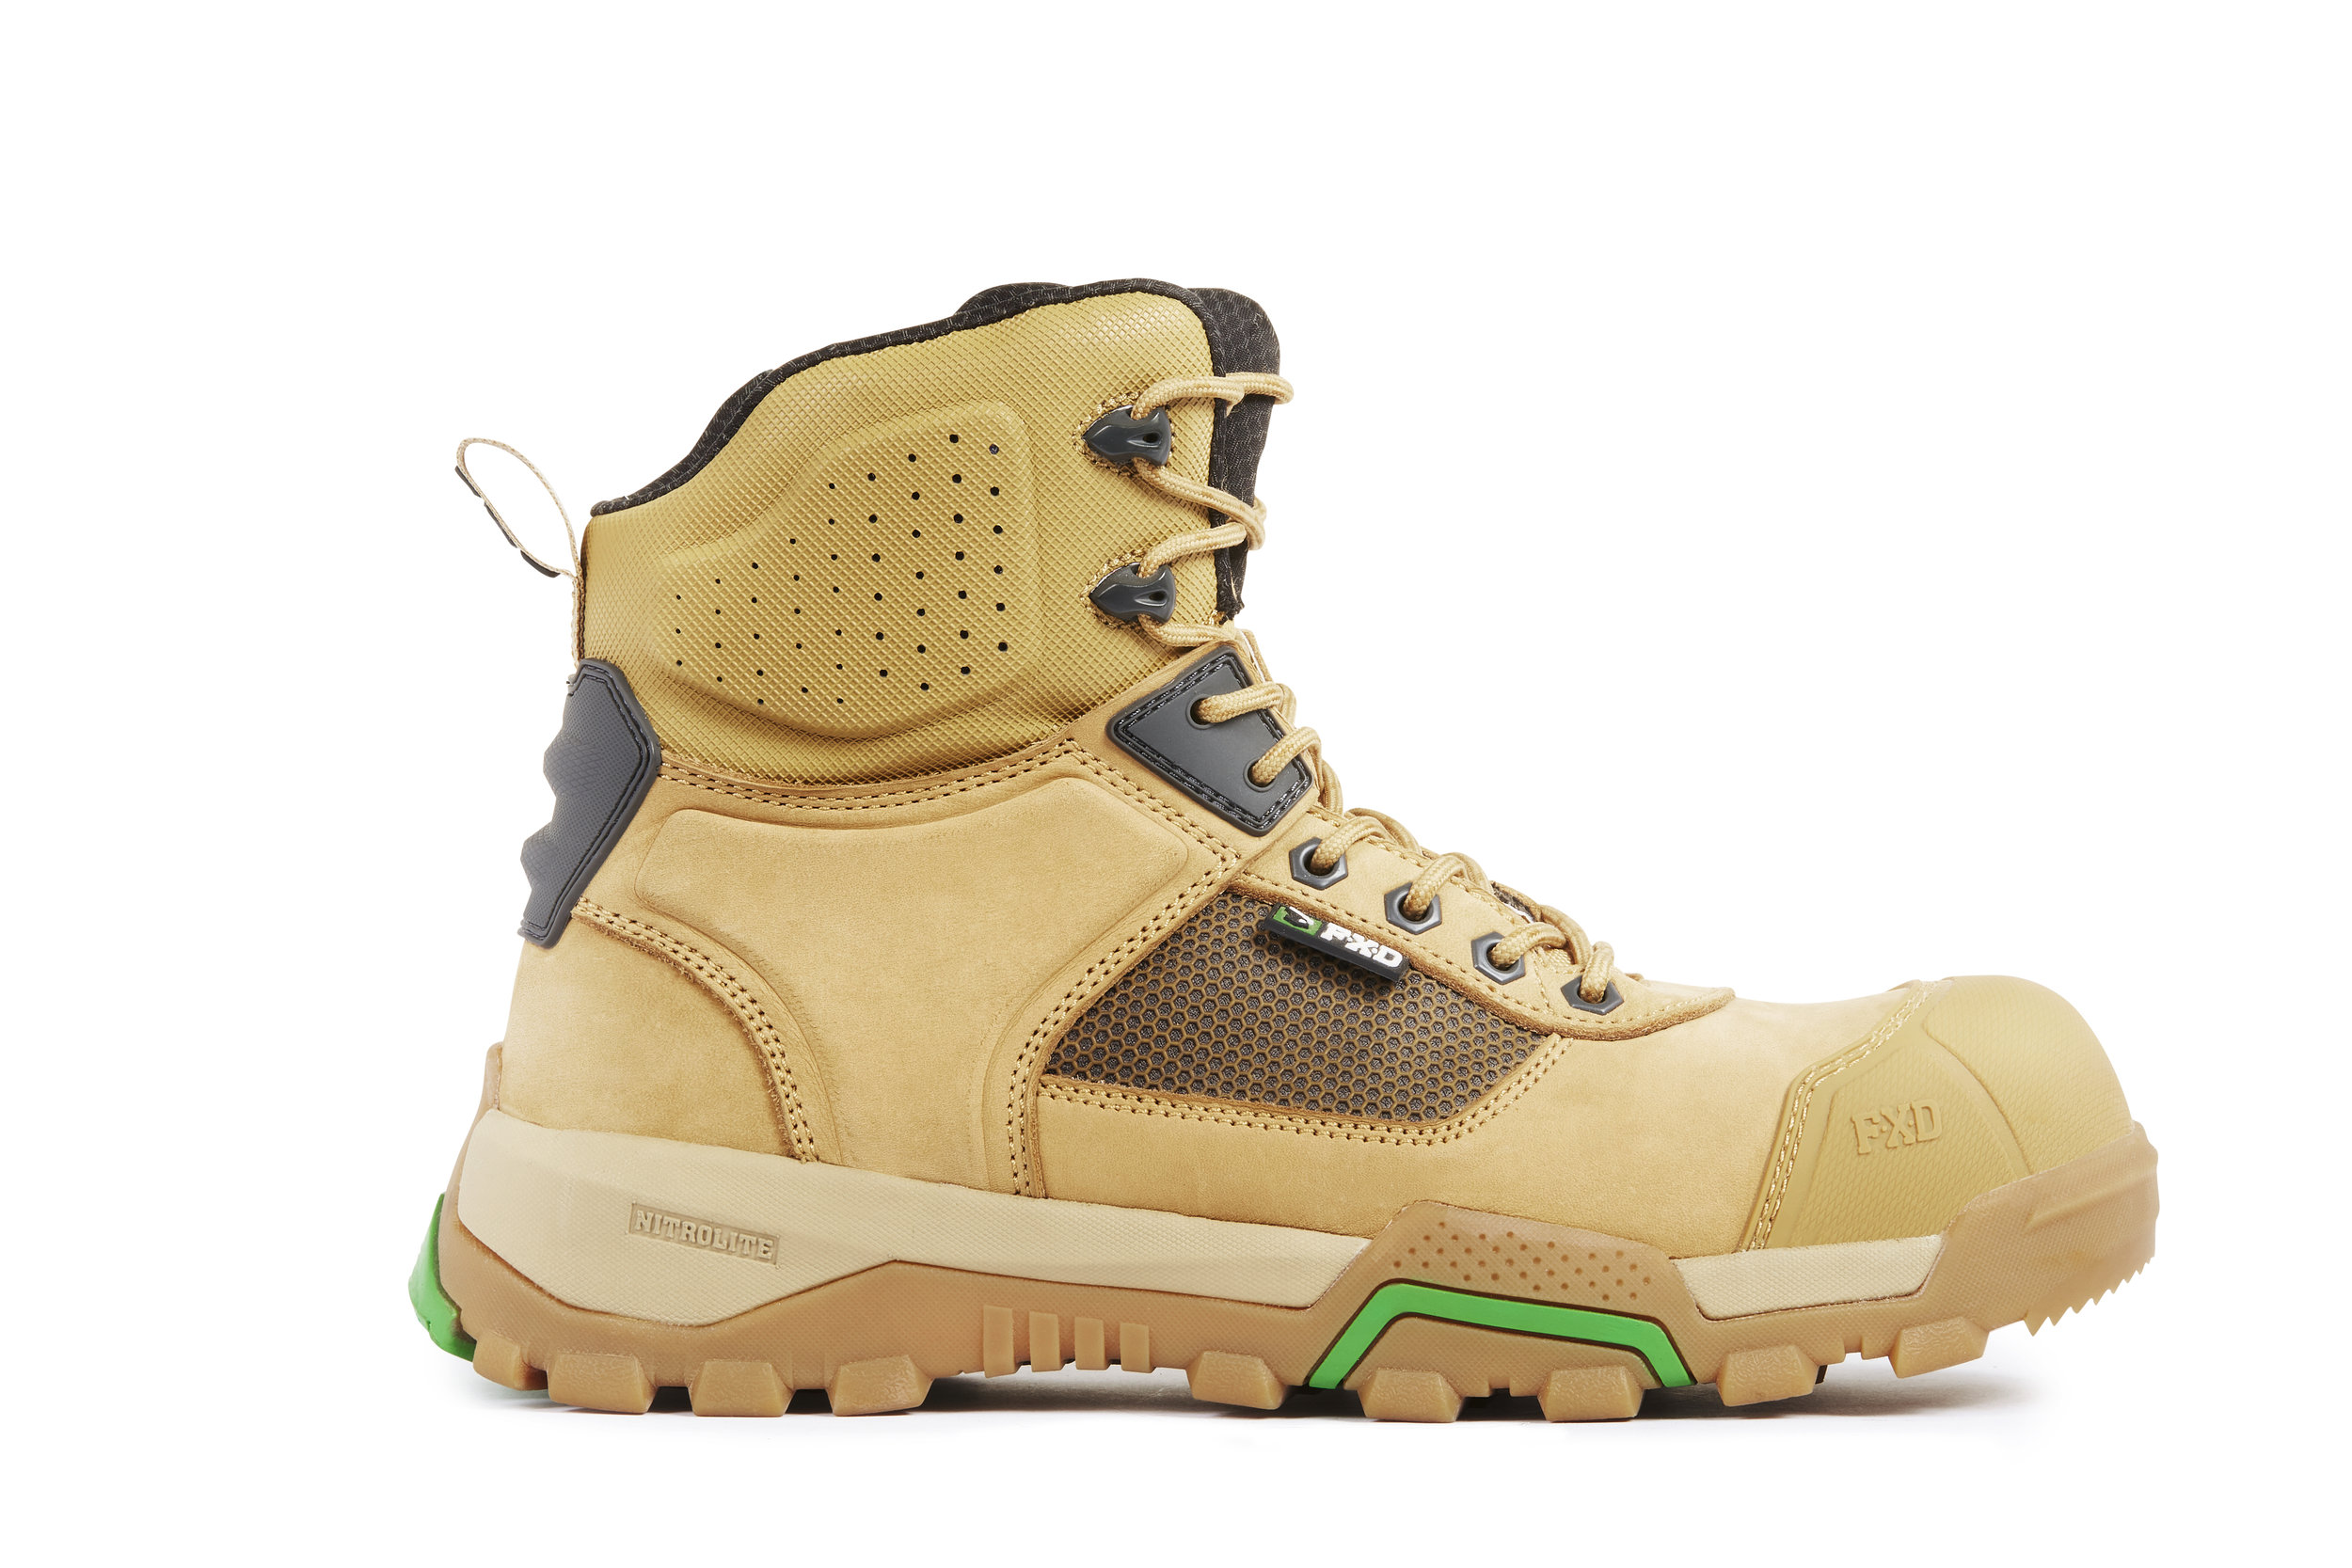 FXD WB-1 work boots (Wheat side view)